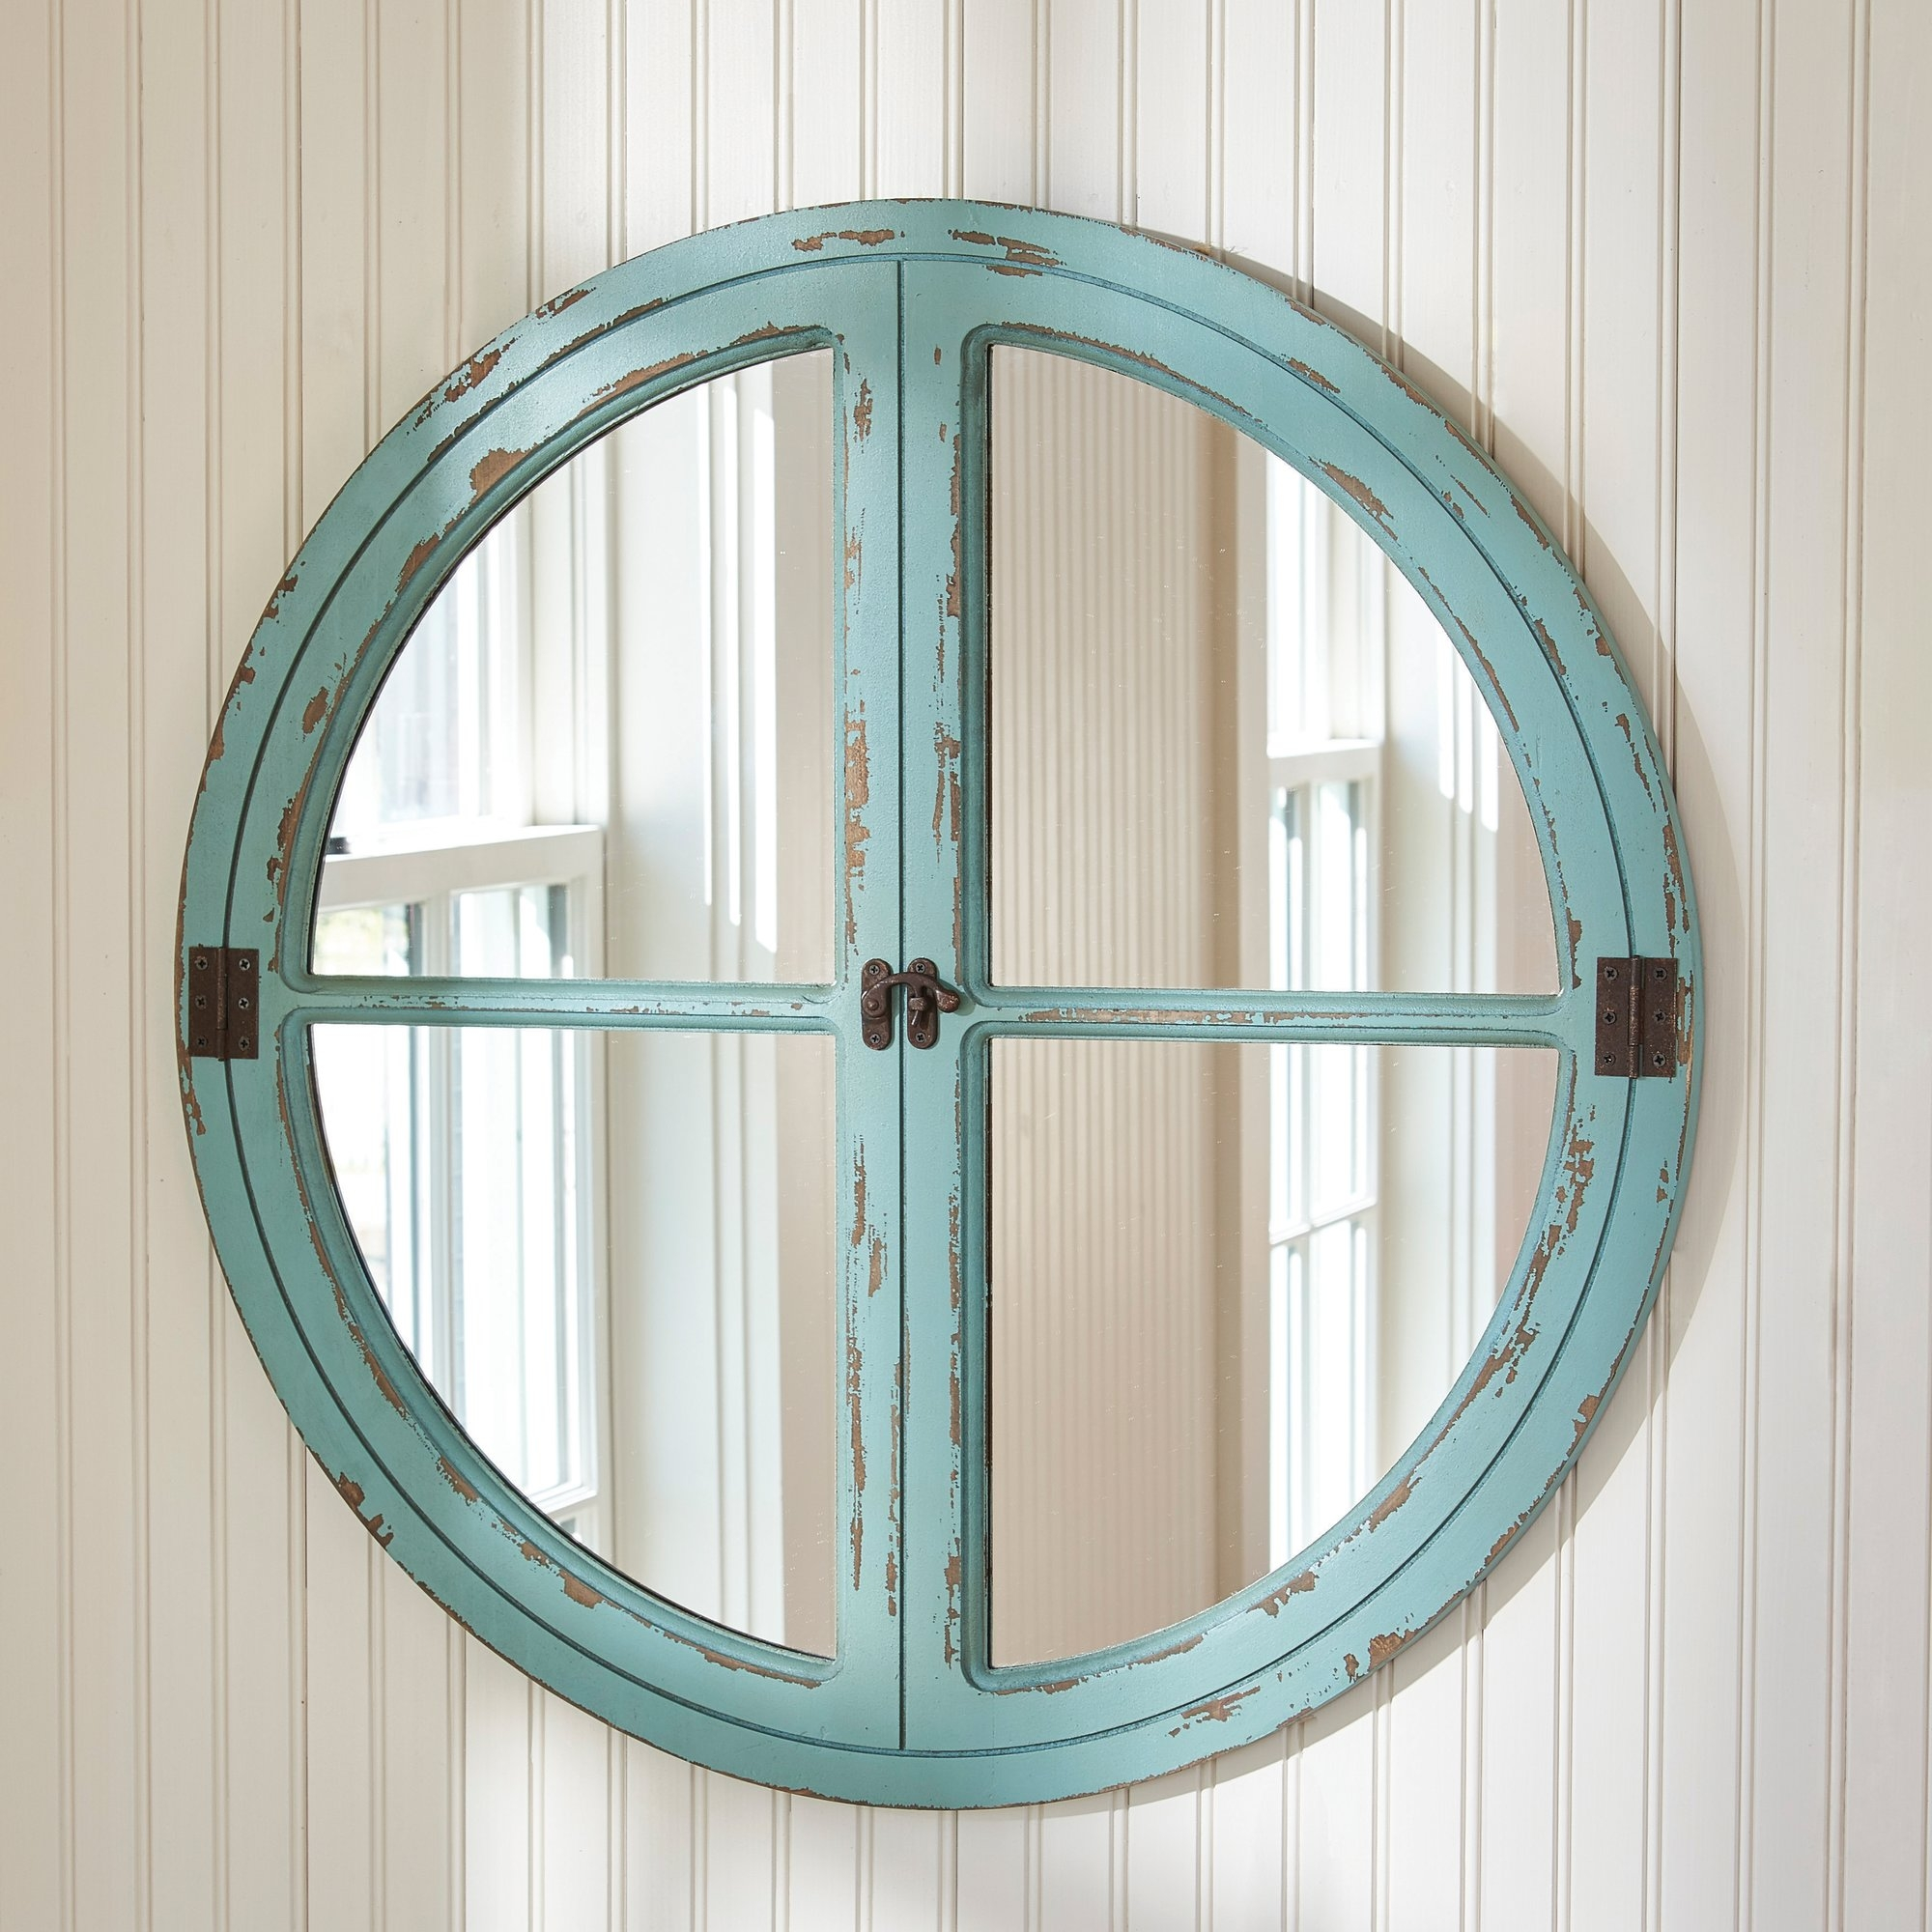 Parkdesignssplitp Round Window Sea Wall Mirror Reviews Wayfair With Regard To Blue Round Mirror (Image 9 of 15)